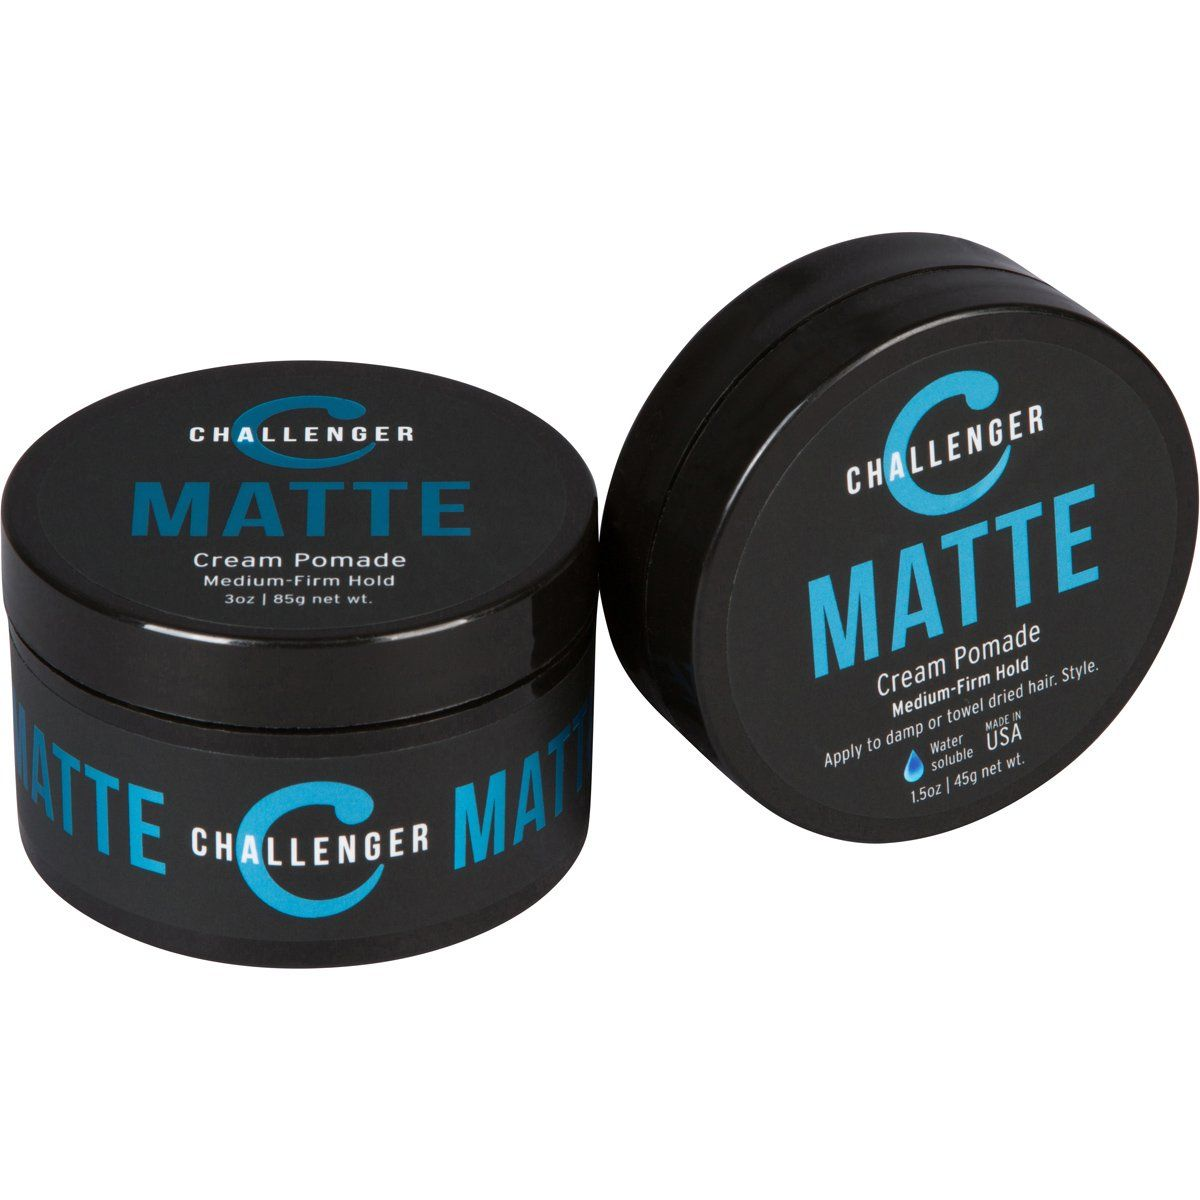 Combo Pack 1 5oz And 3oz Matte Cream Pomade Medium Firm Hold Best Styling Cream From Challenger Water Based Clea In 2020 Styling Cream Hair Wax Hair Care Shop